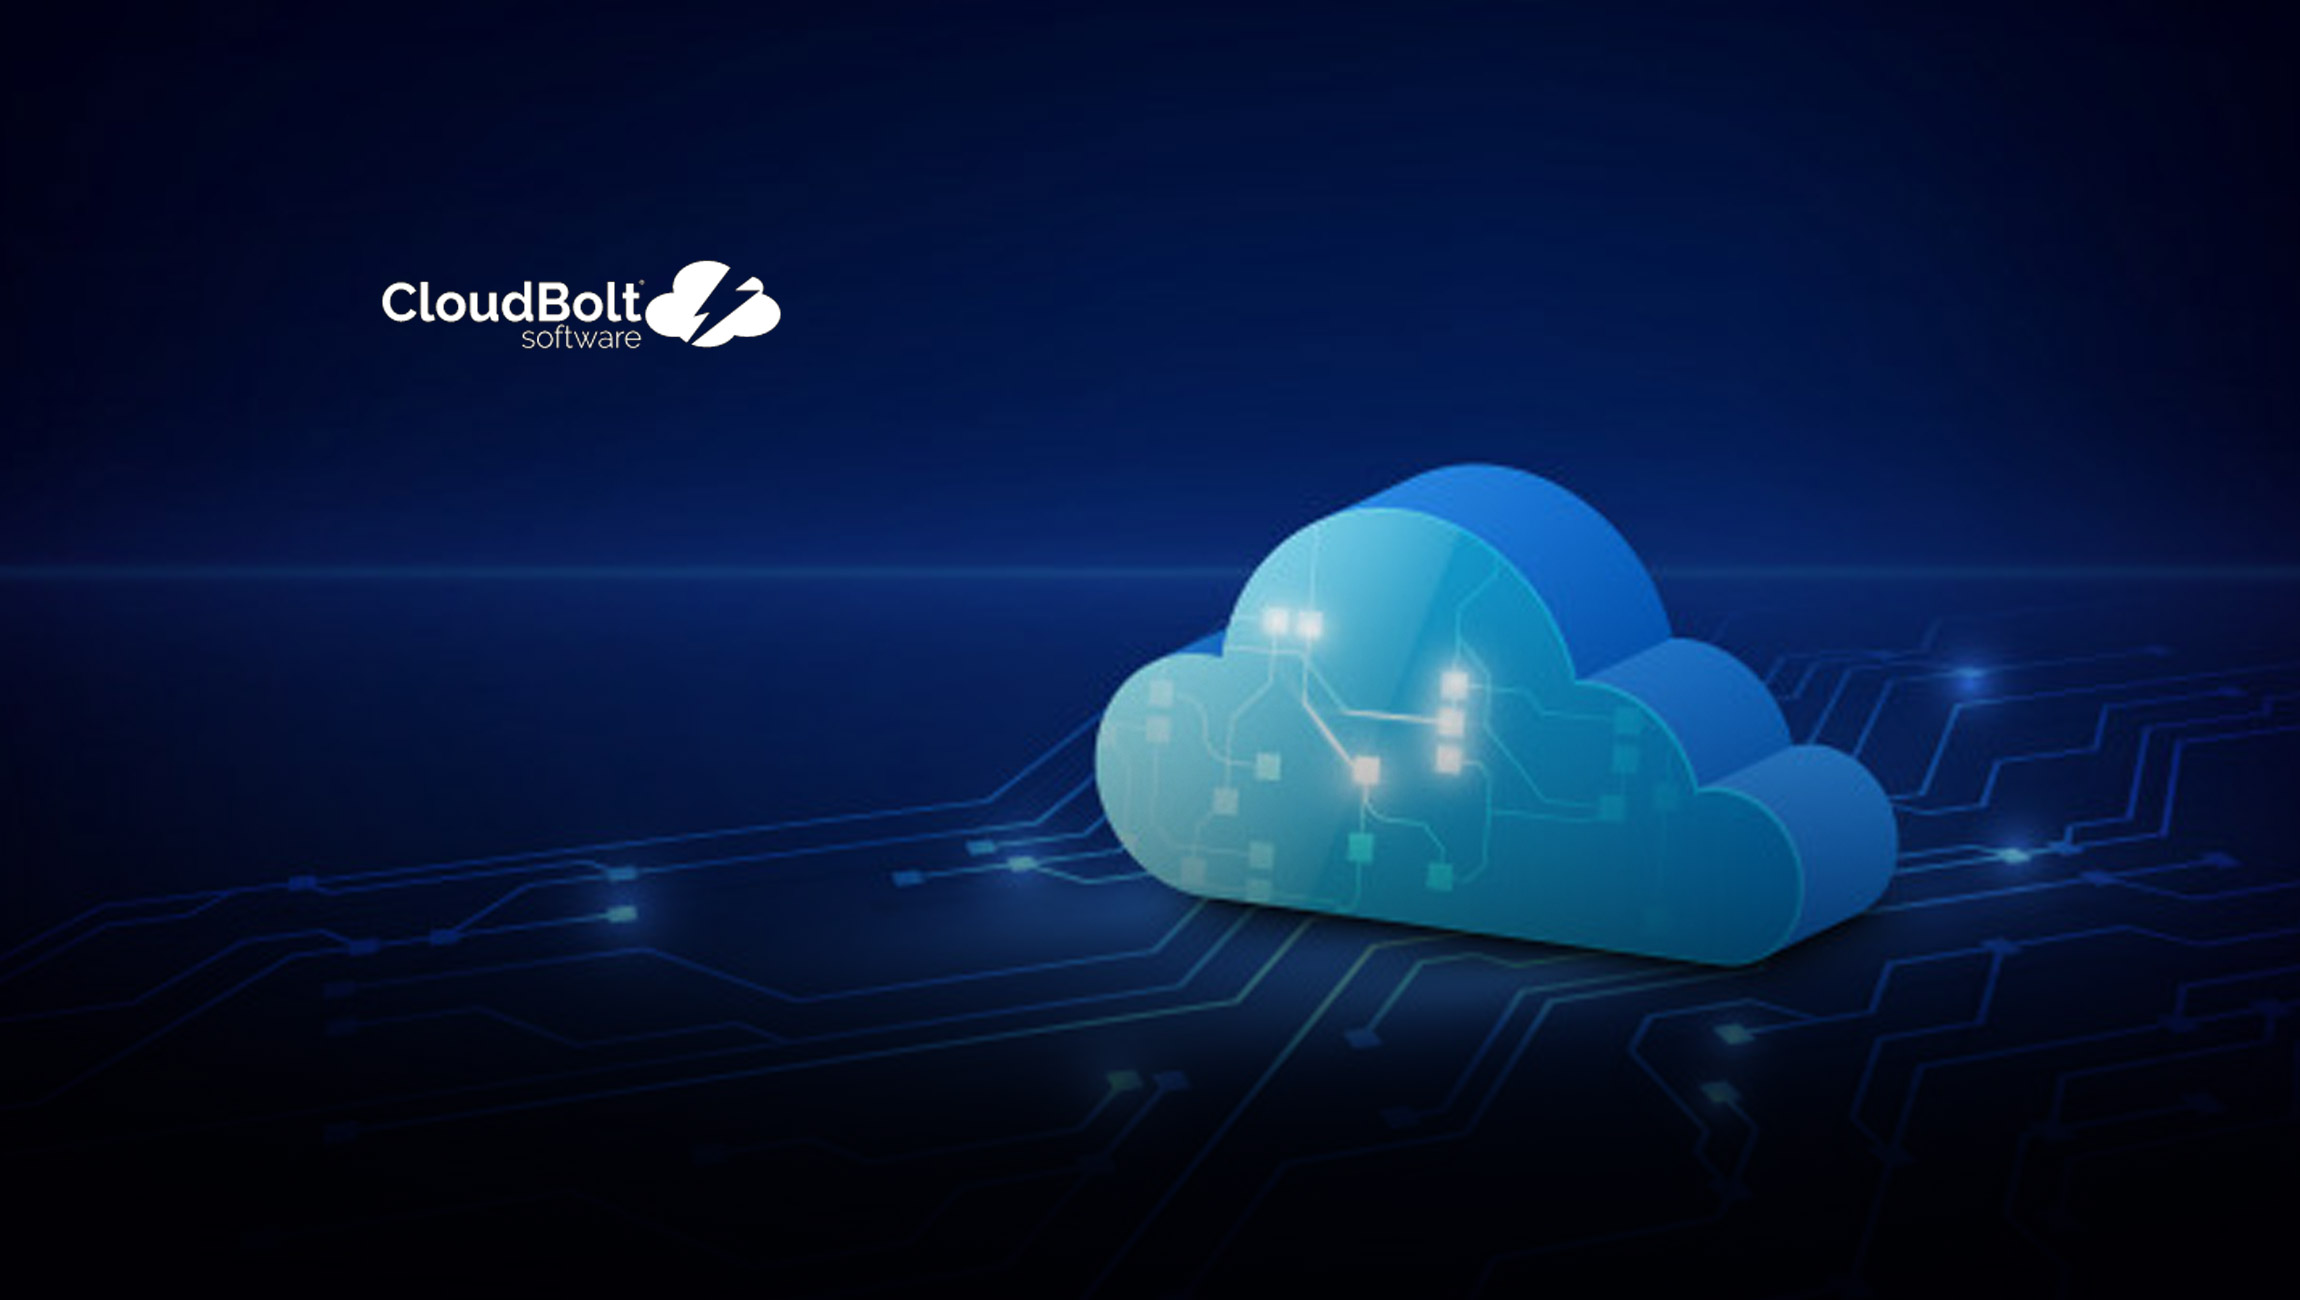 Rapid-Growth-and-Trailblazing-Tech-in-2020-Positions-CloudBolt-Software-to-Redefine-Cloud-Management-in-2021